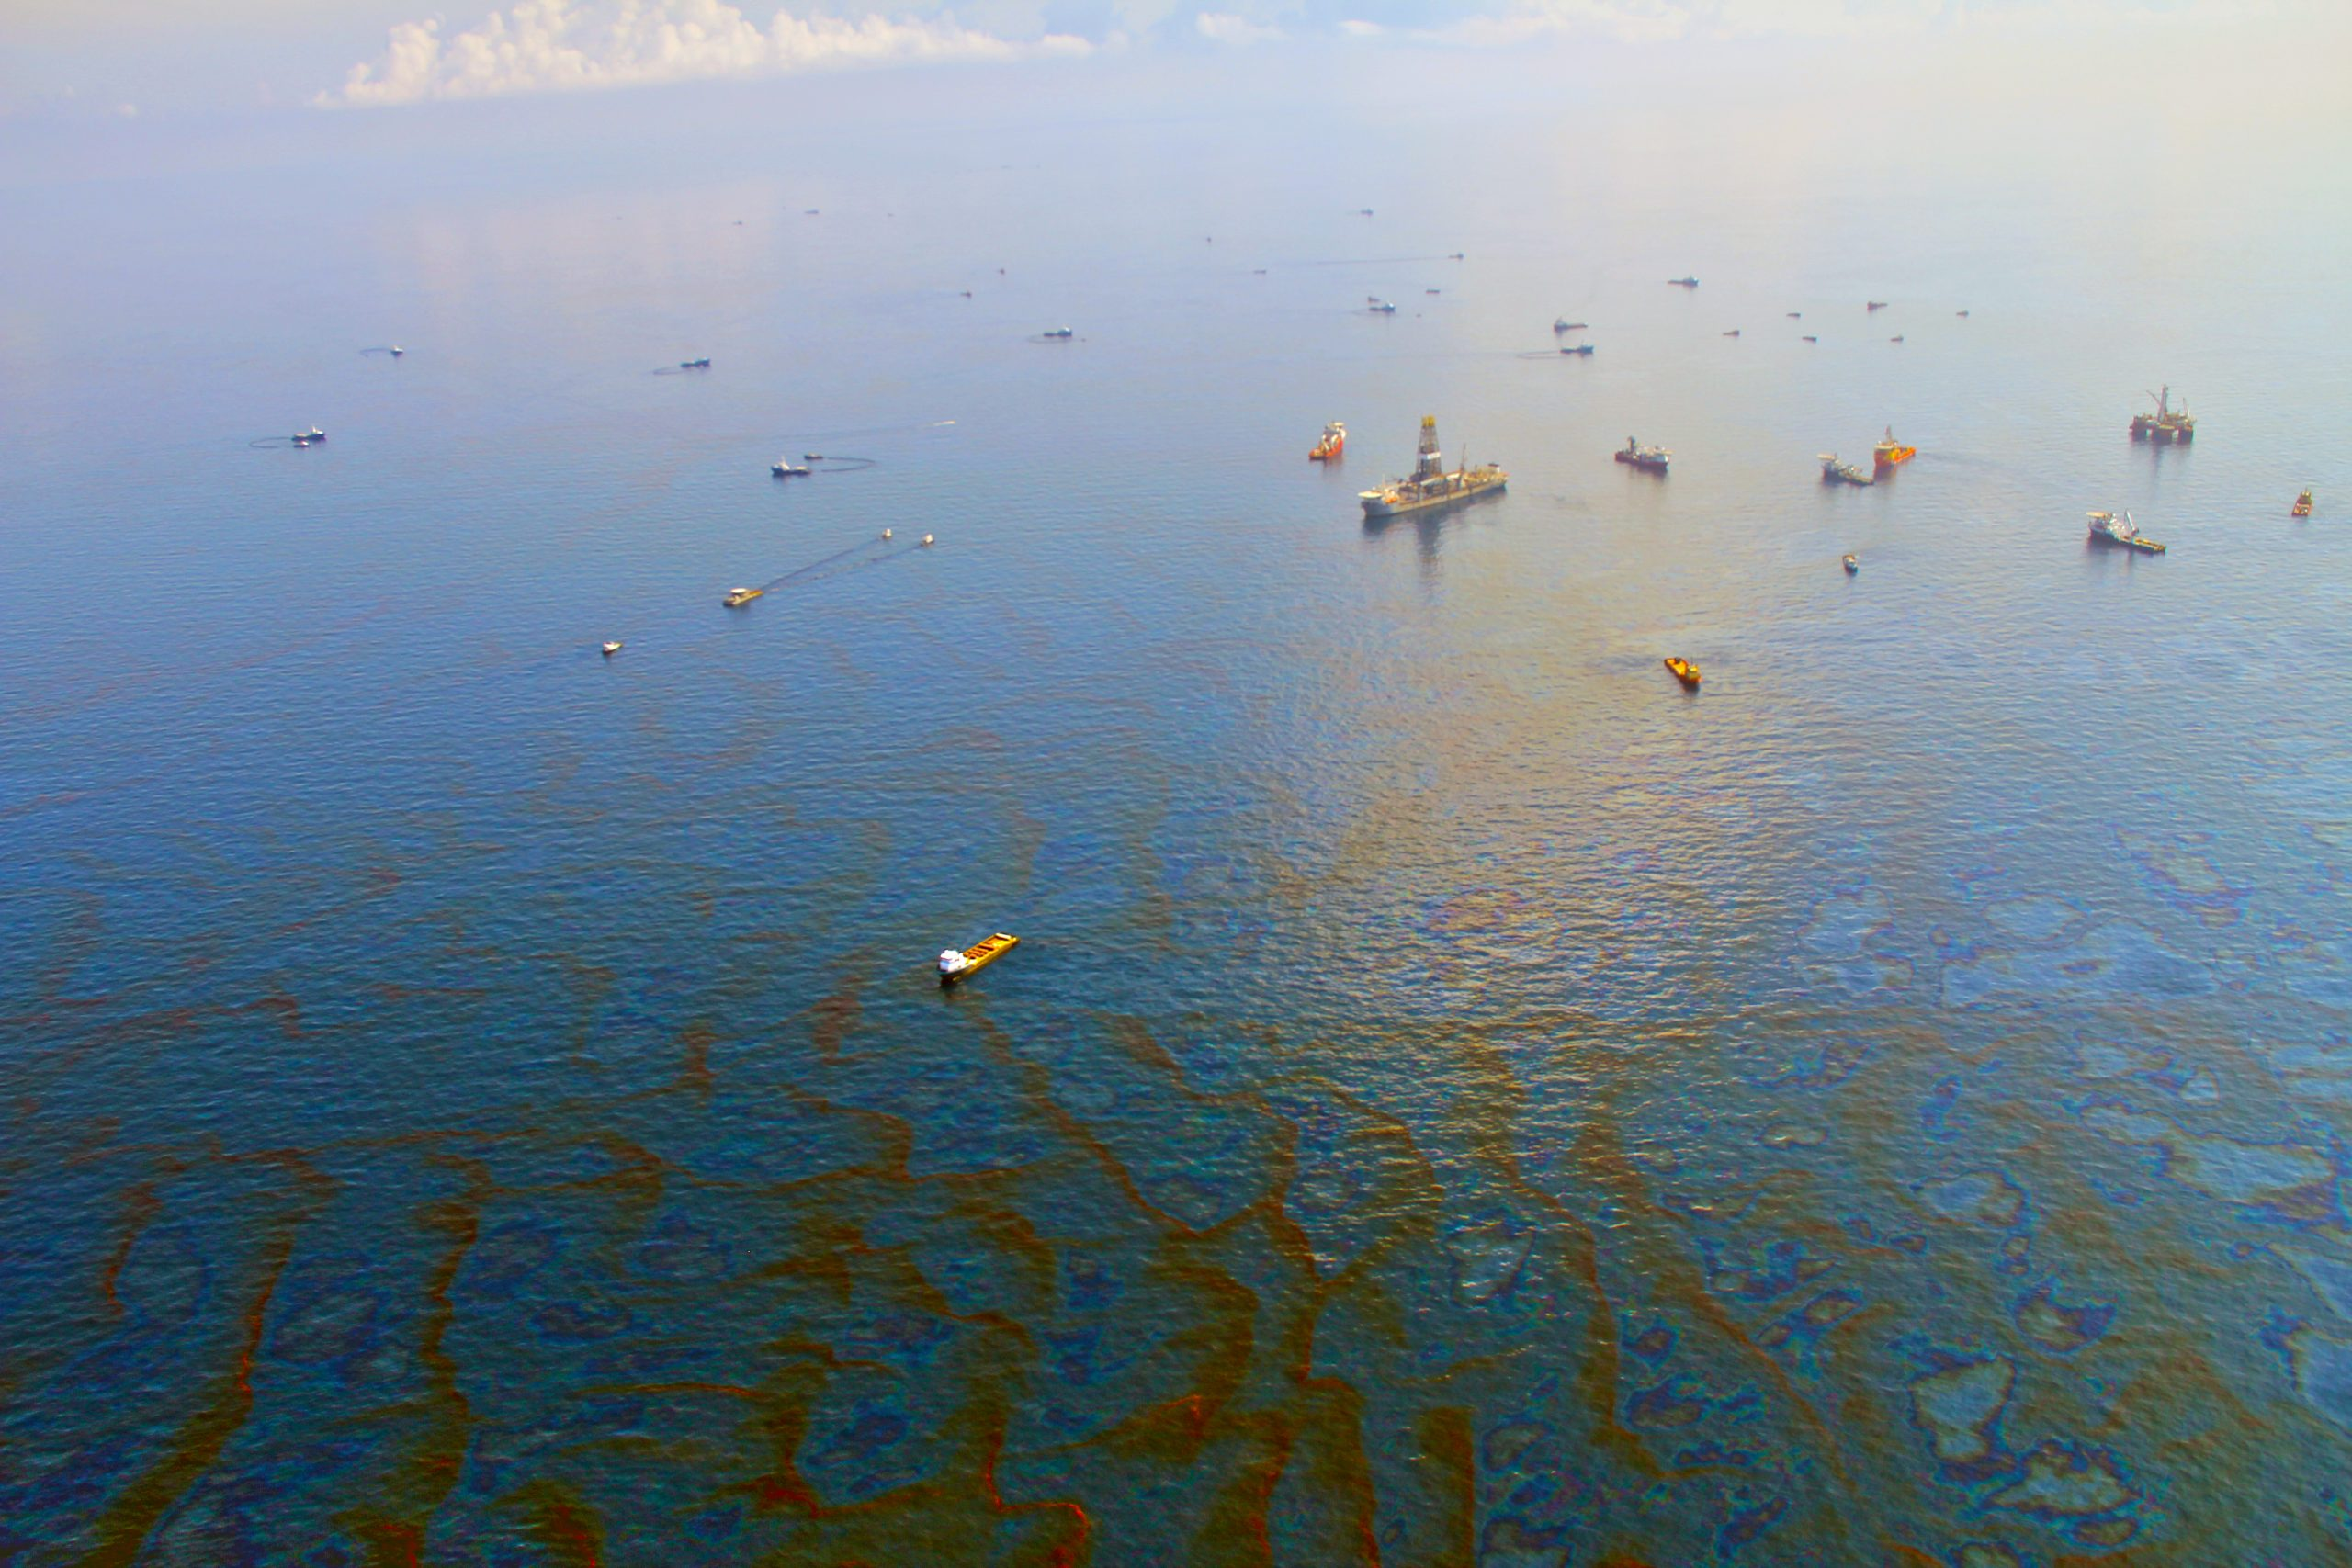 Enormous Source and Sink of Hydrocarbons Discovered in the Ocean